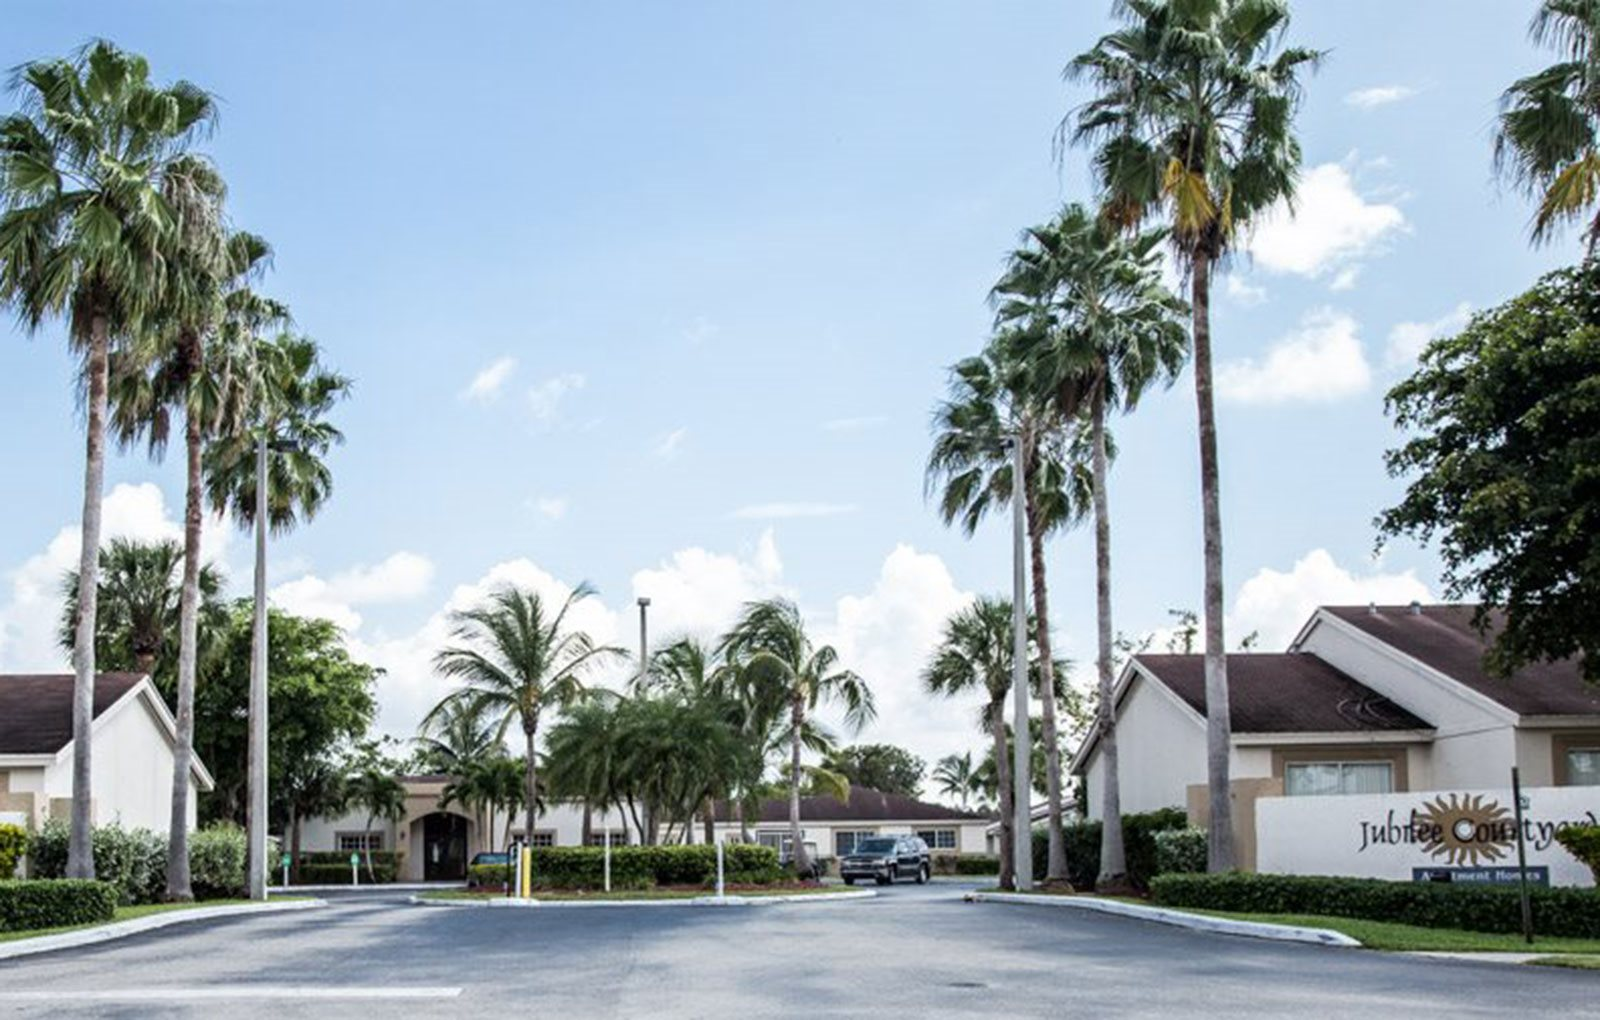 Street entrance to Jubilee Courtyards in Florida City, FL